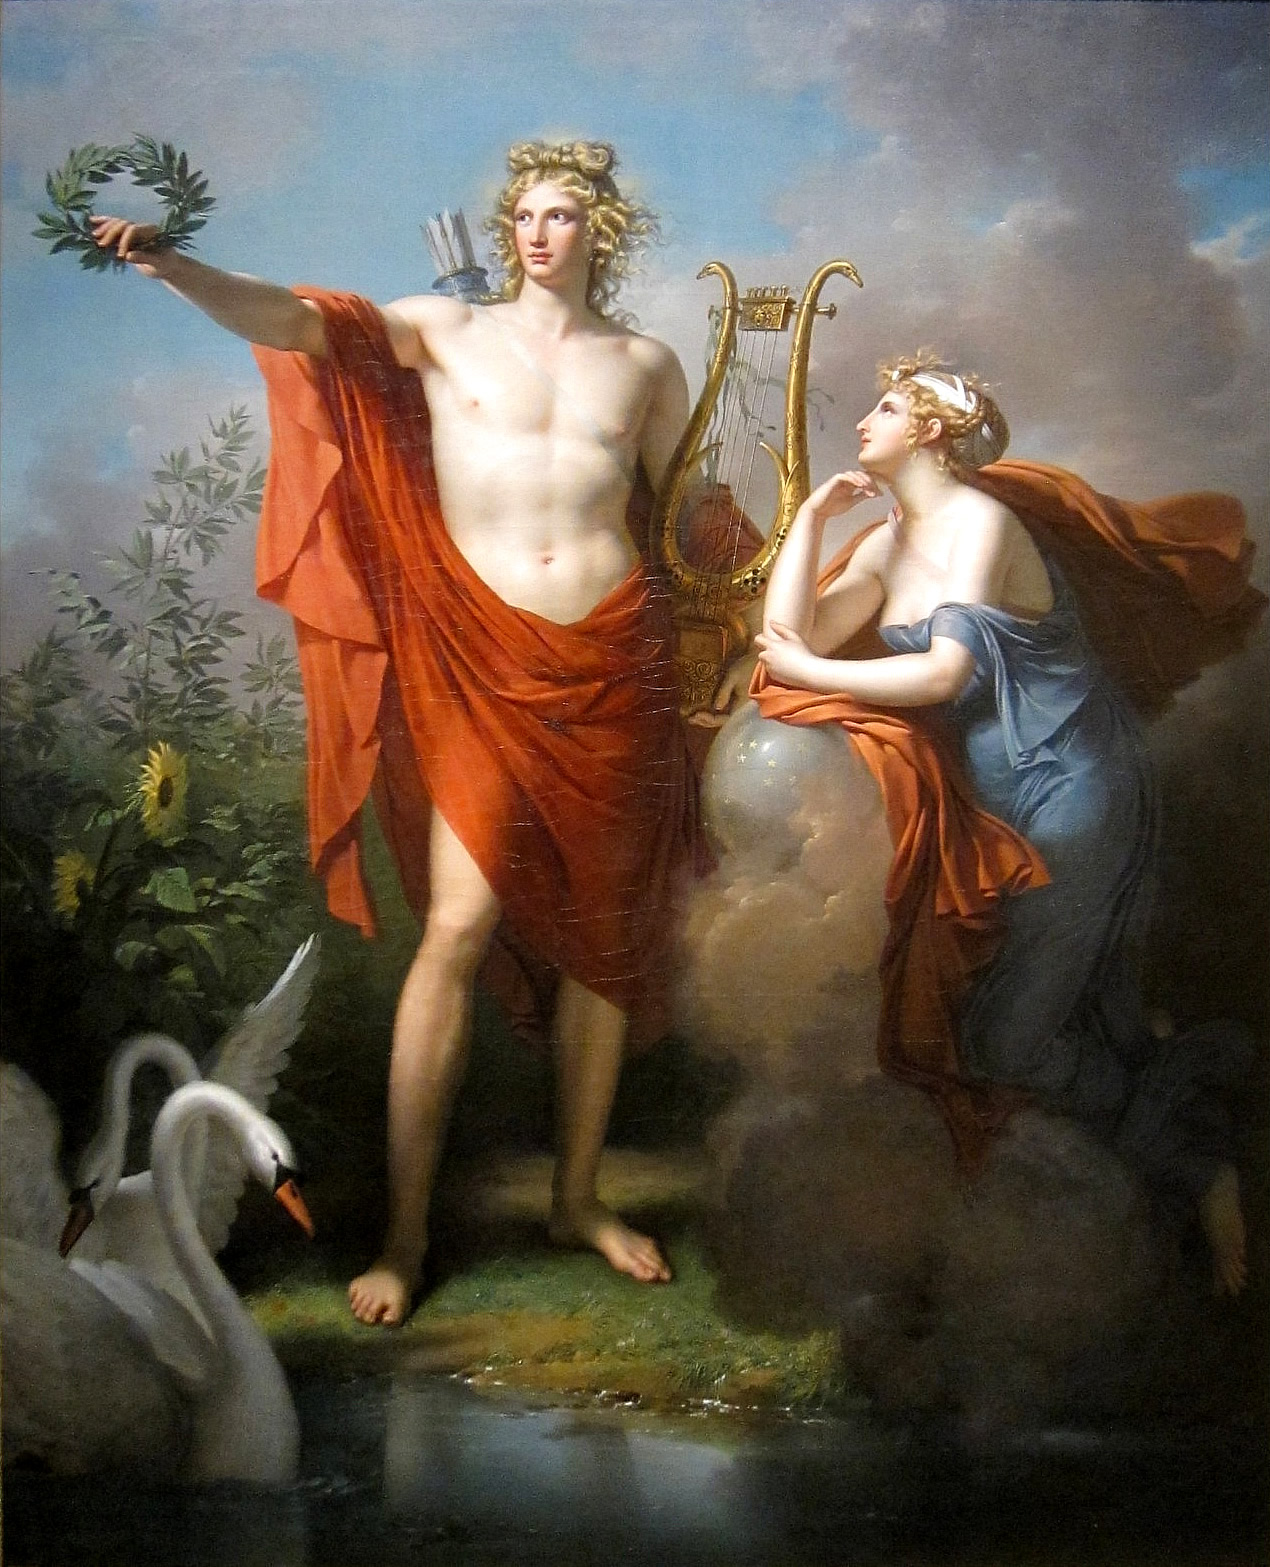 Assinatura Apollo%2C_God_of_Light%2C_Eloquence%2C_Poetry_and_the_Fine_Arts_with_Urania%2C_Muse_of_Astronomy_-_Charles_Meynier